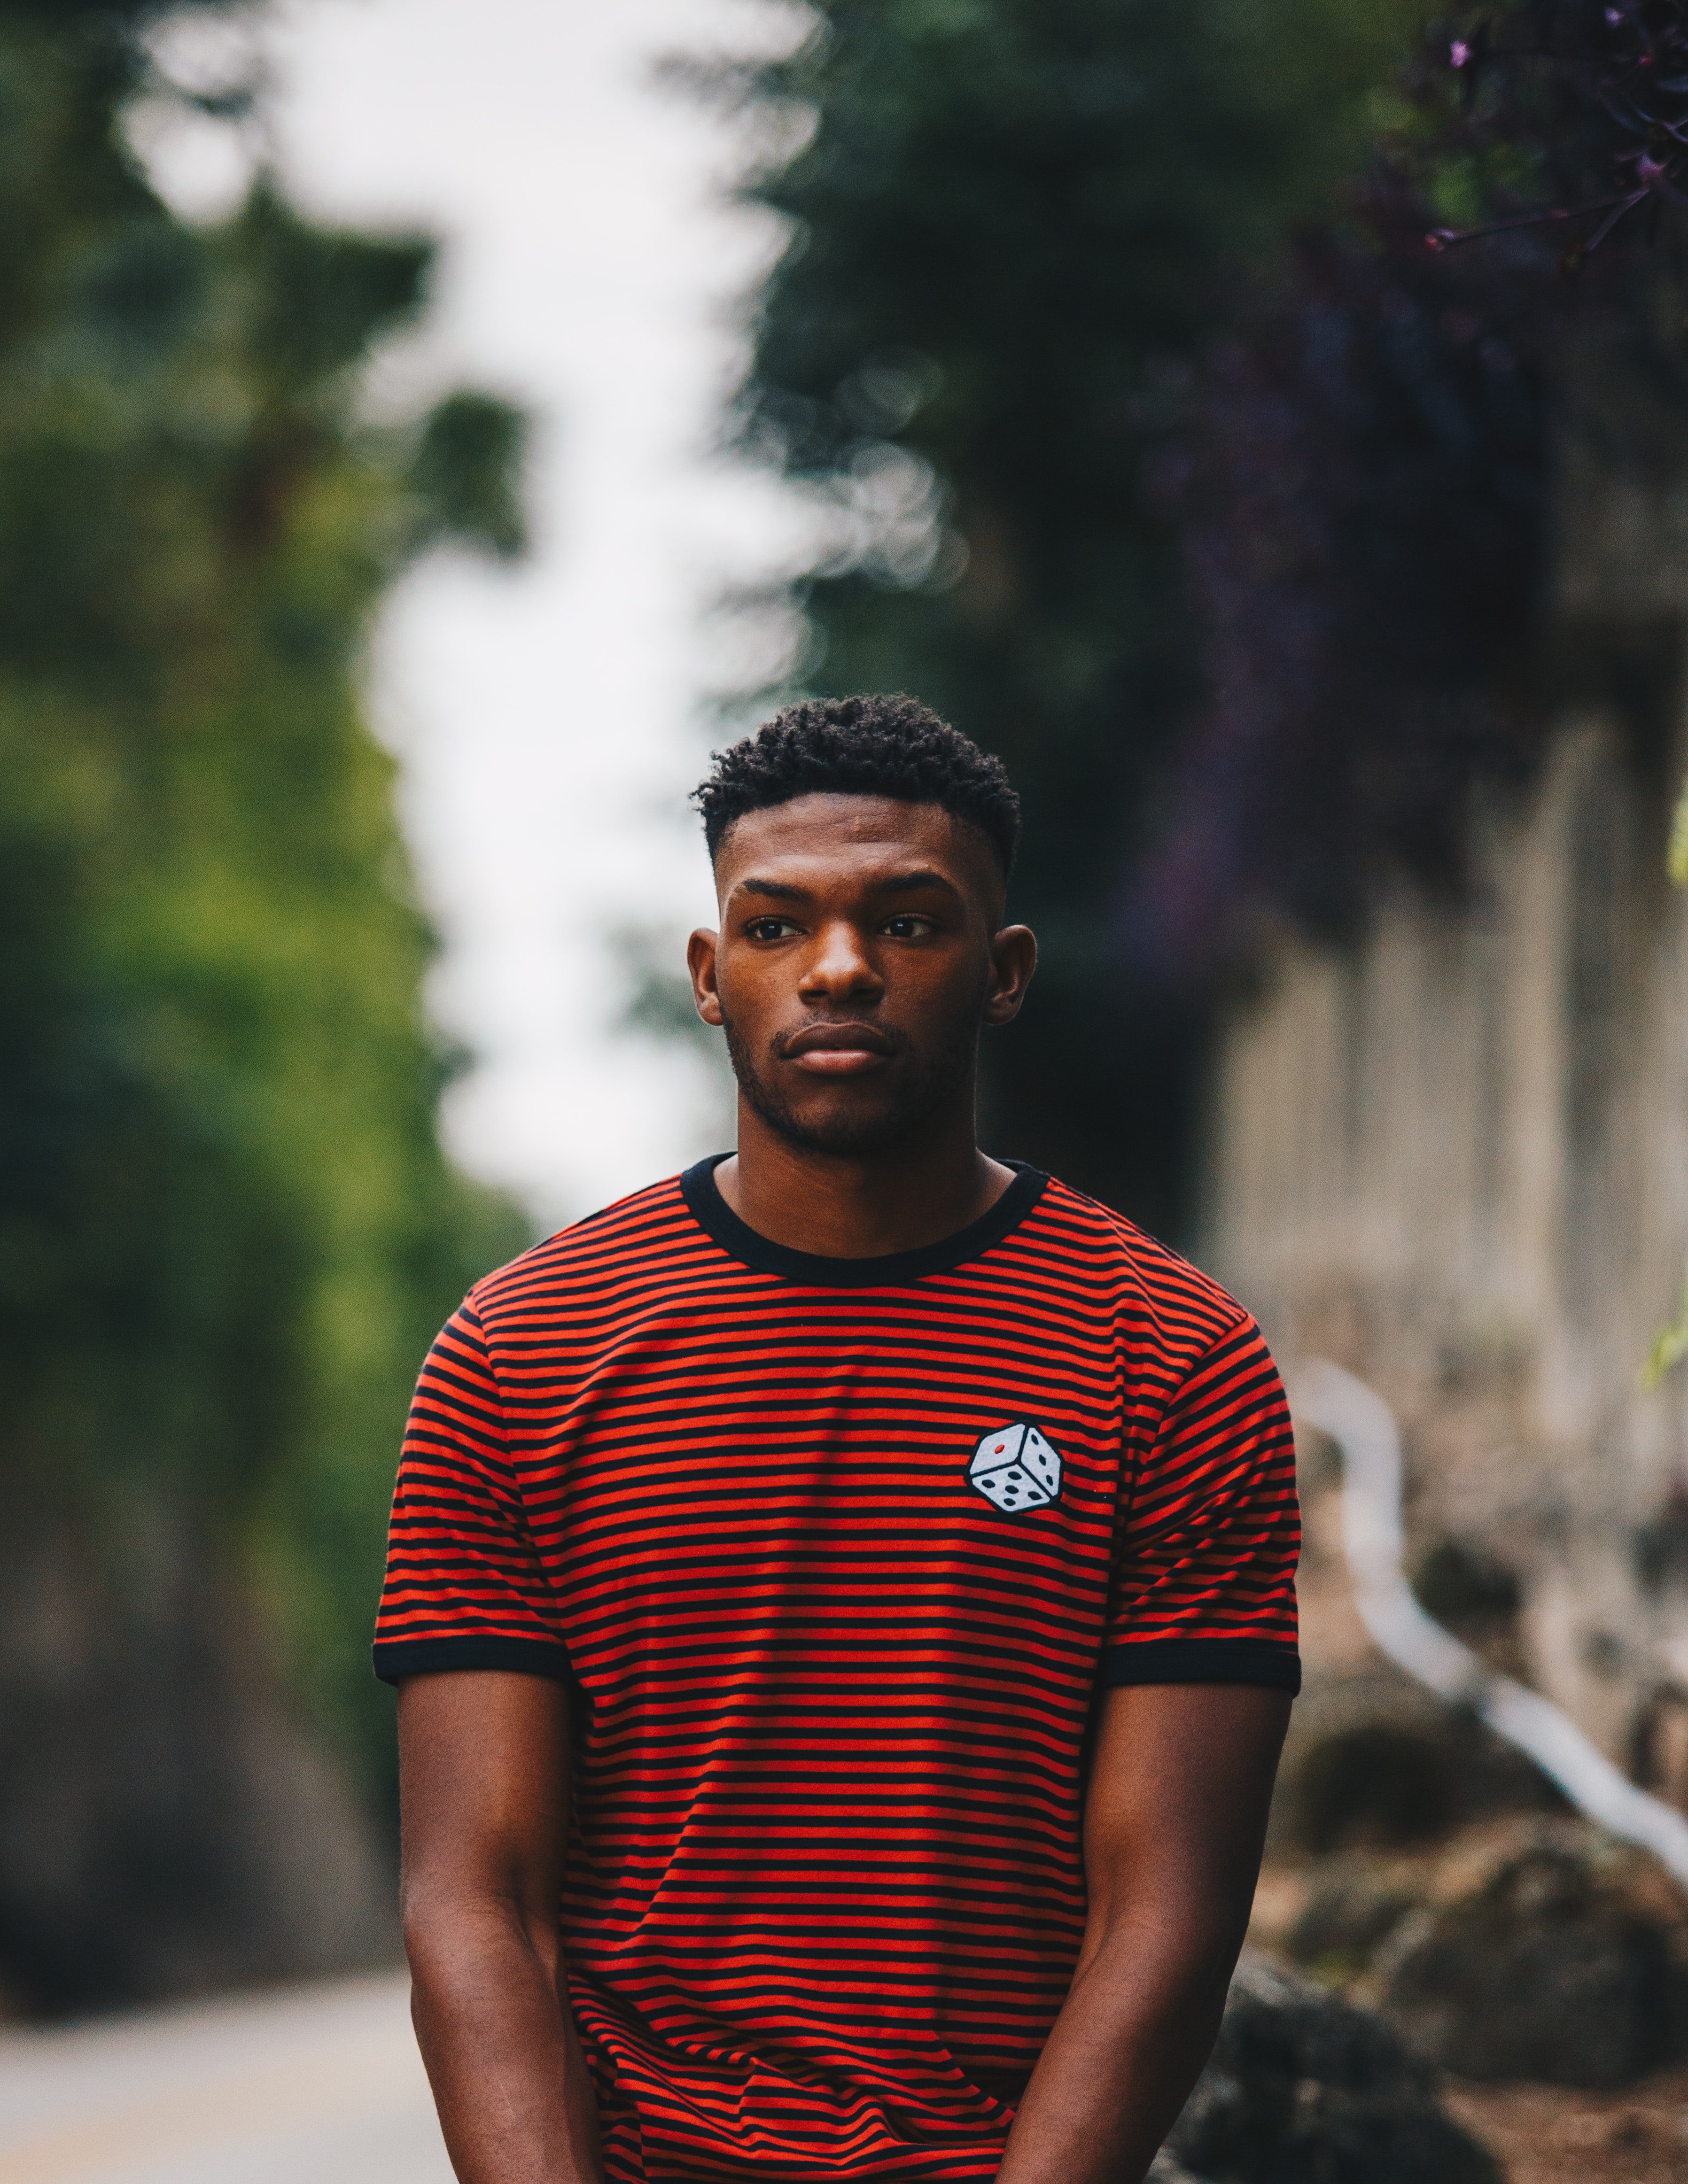 man wearing red and black striped ringer shirt